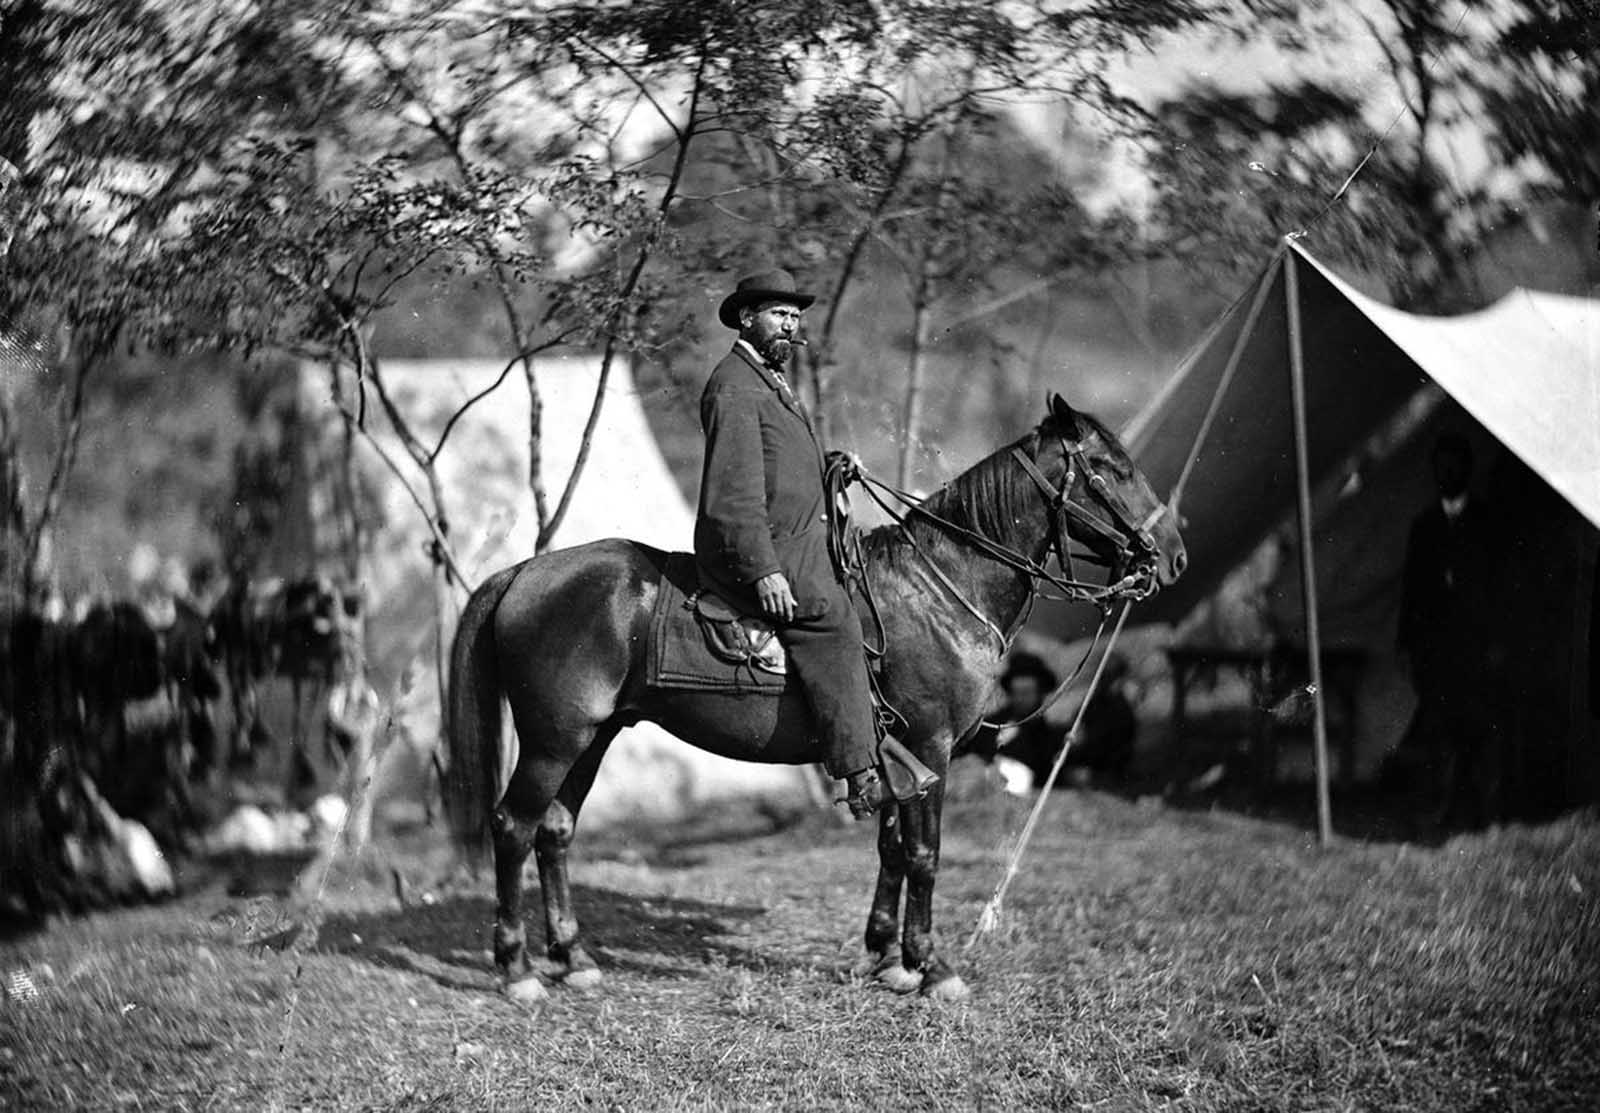 Account of the battle of antietam during the civil war in america